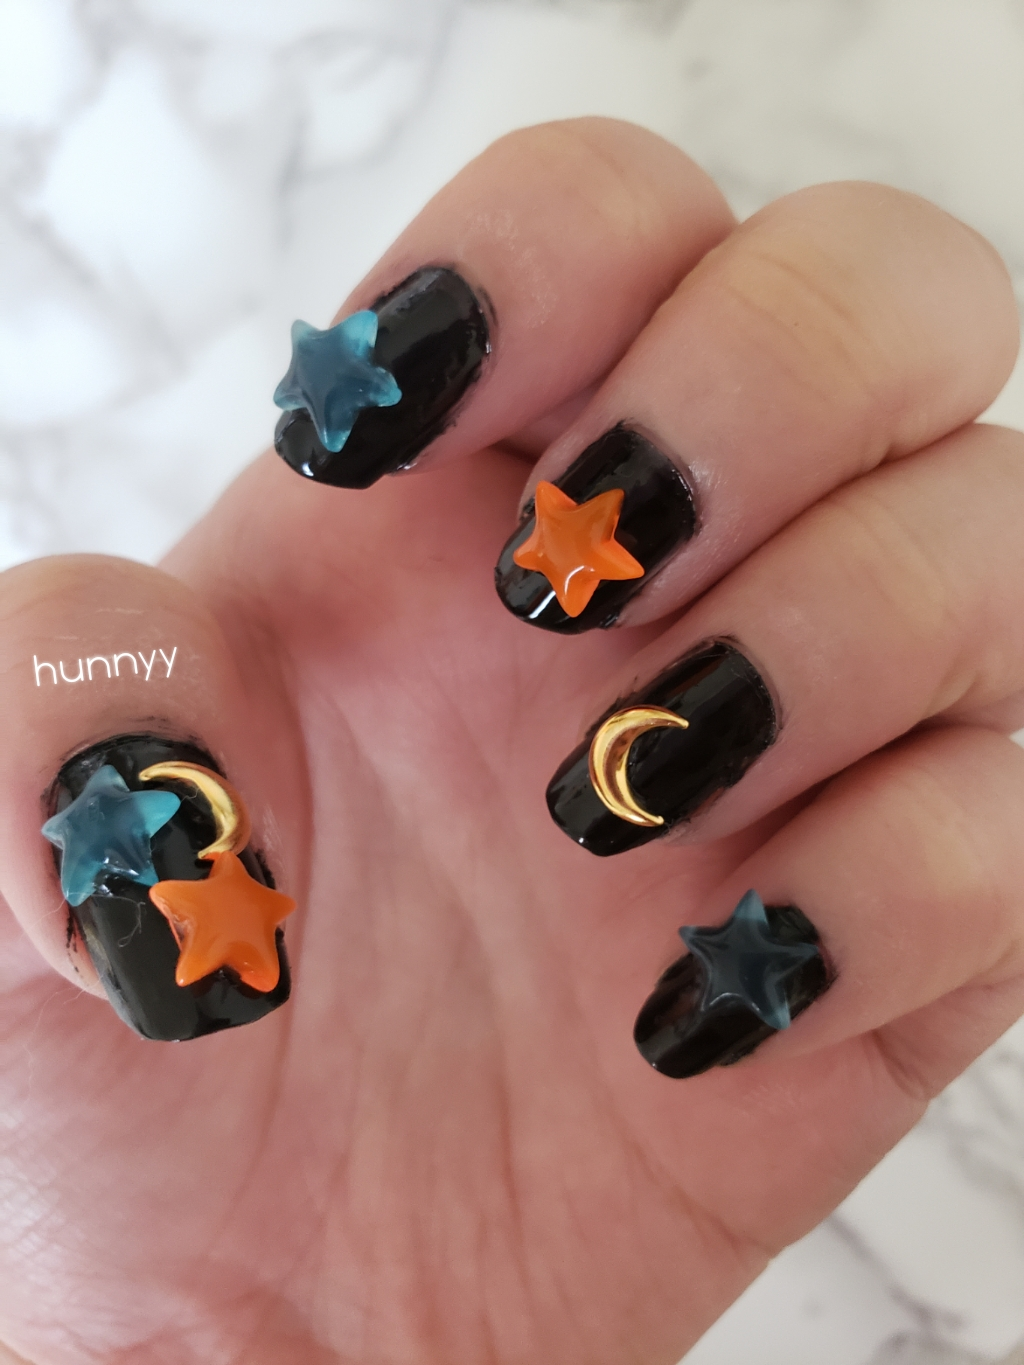 ::Hunnyy:: Who Says Halloween Has To Be Scary? Cute Nail Design!